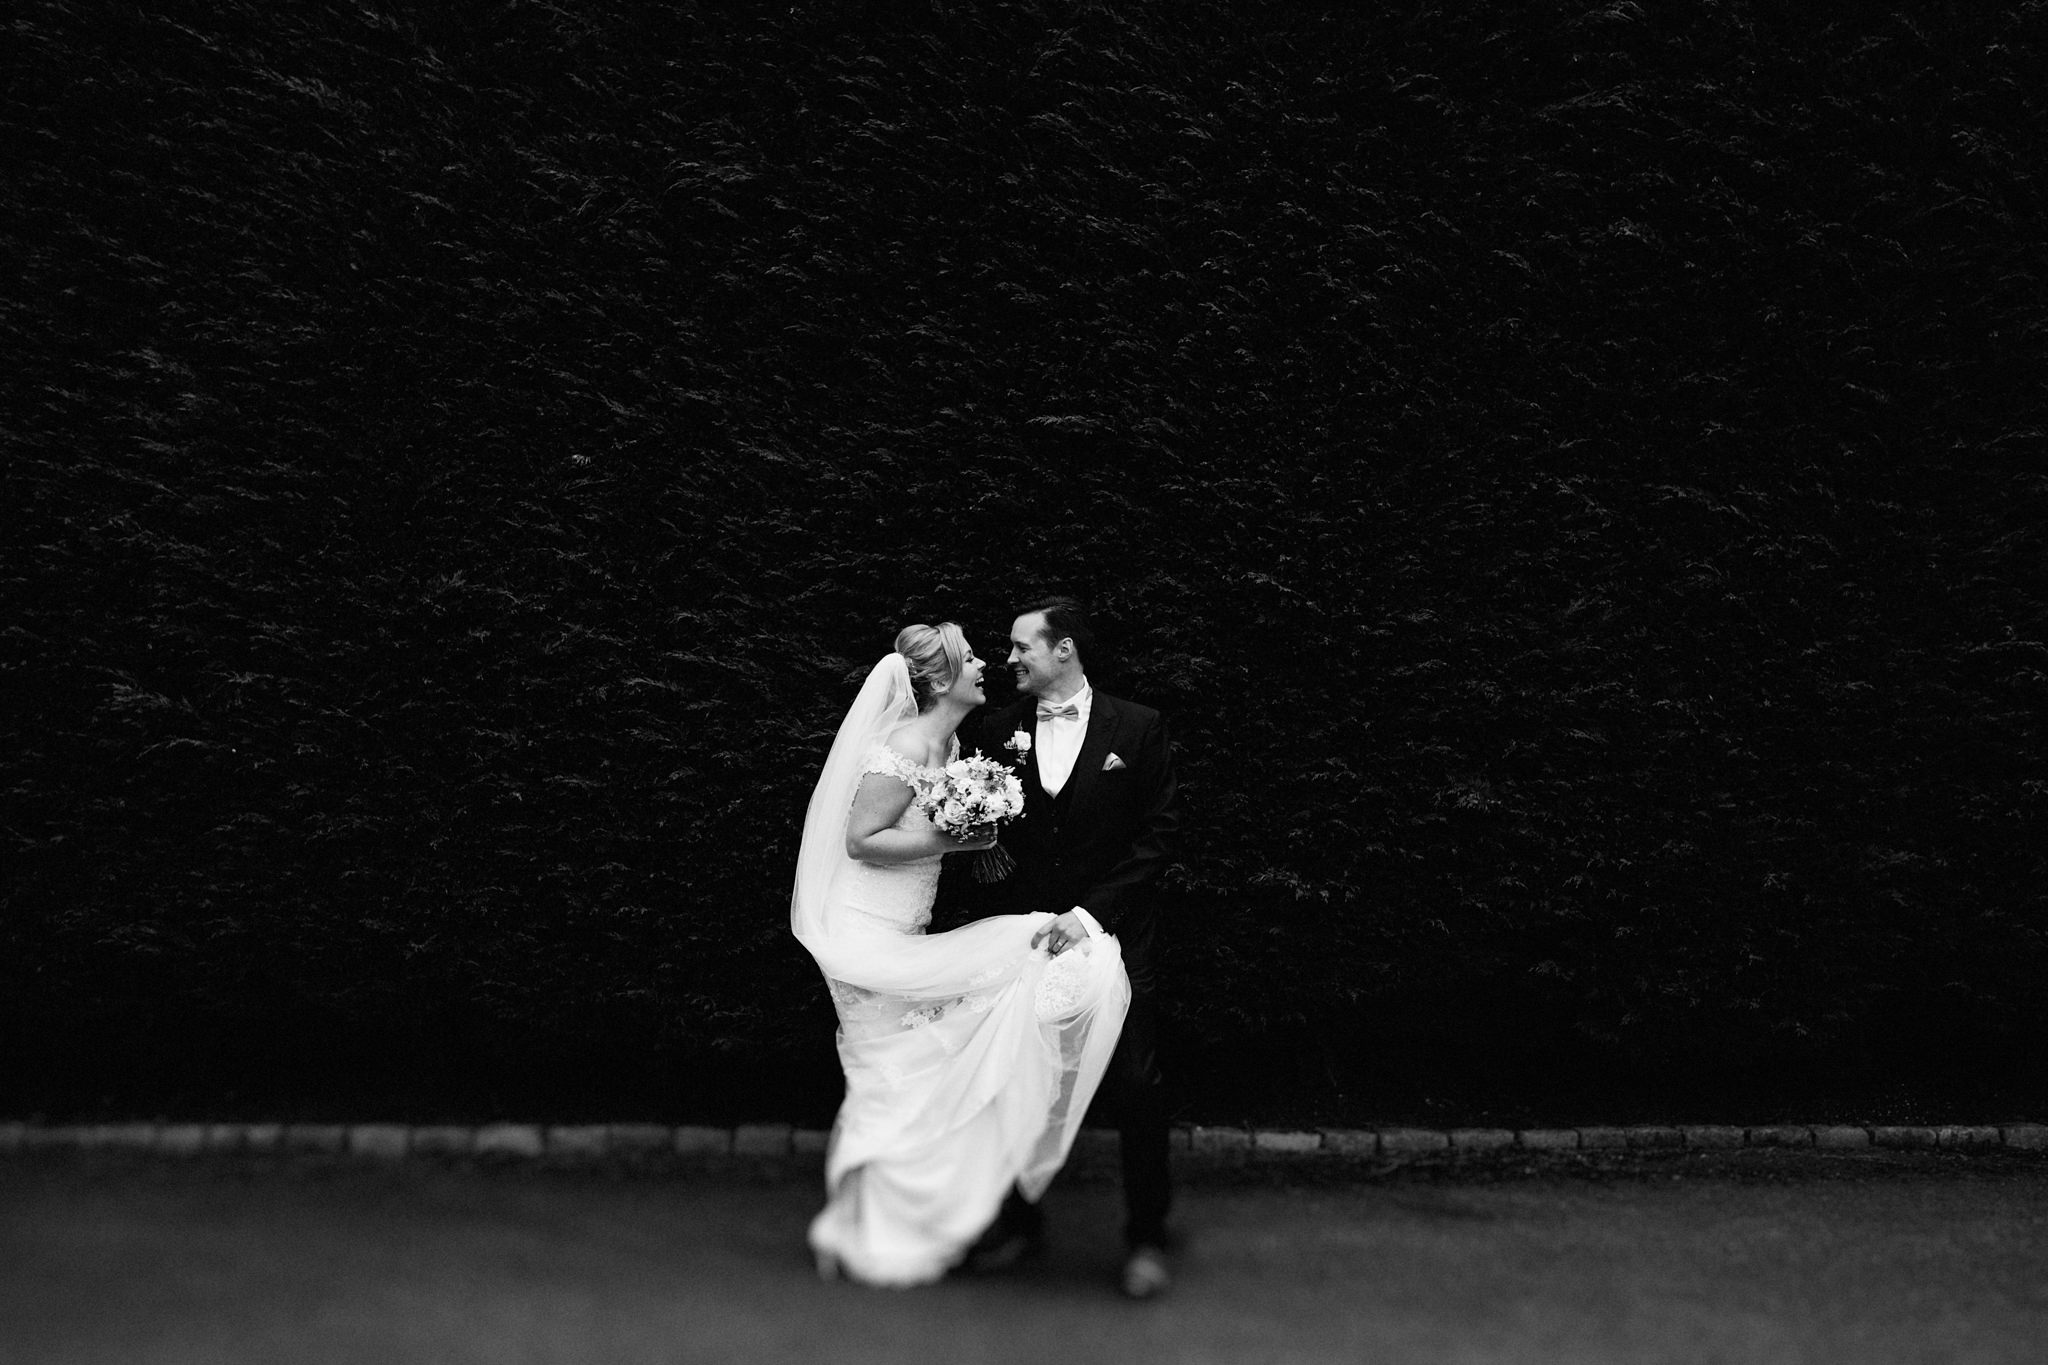 Black ans white portrait of bride and groom laughing